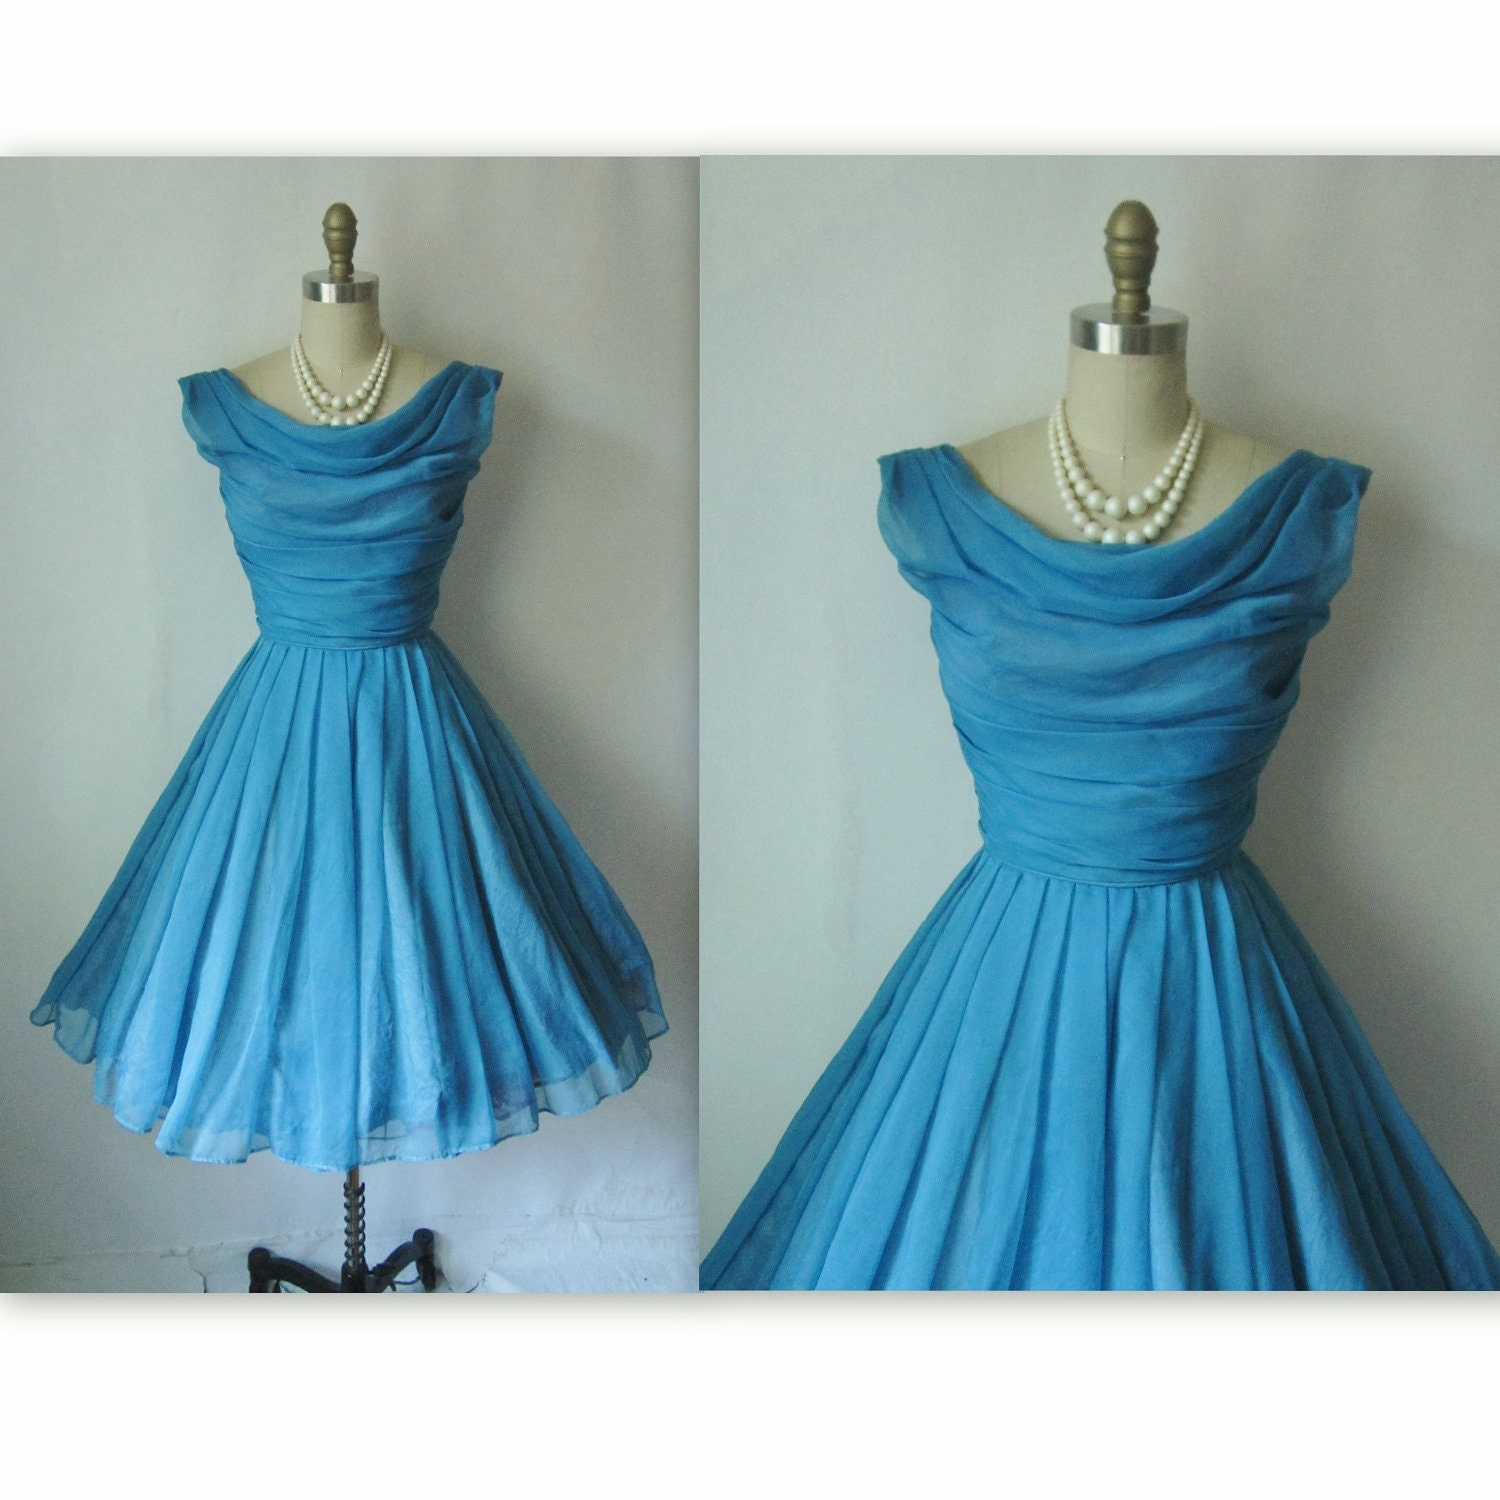 1950'S Evening Dresses For Sale Uk - Holiday Dresses